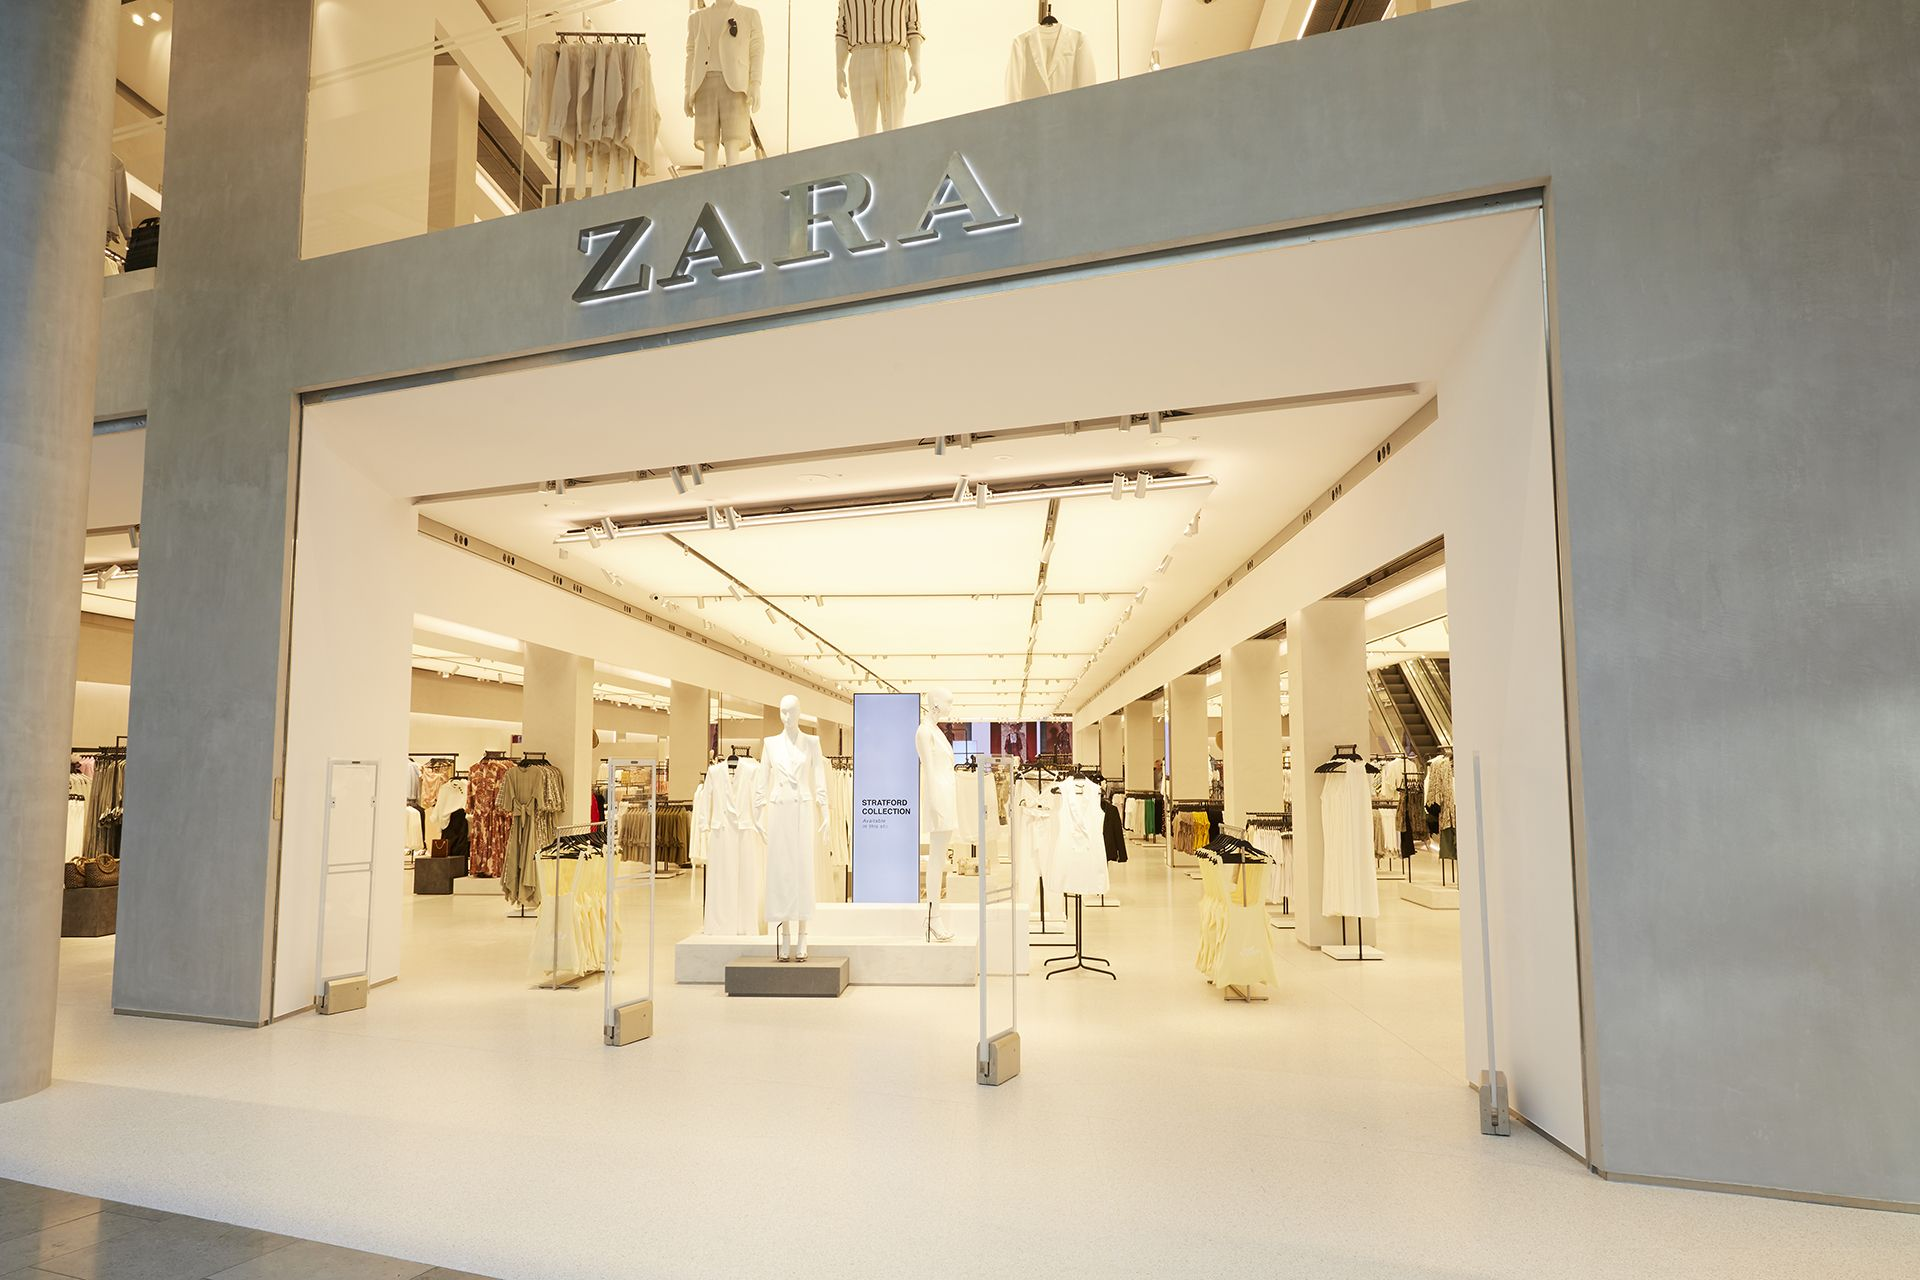 Zara In Defense Mode After Ifc Mall Store Closure Retail Leisure International